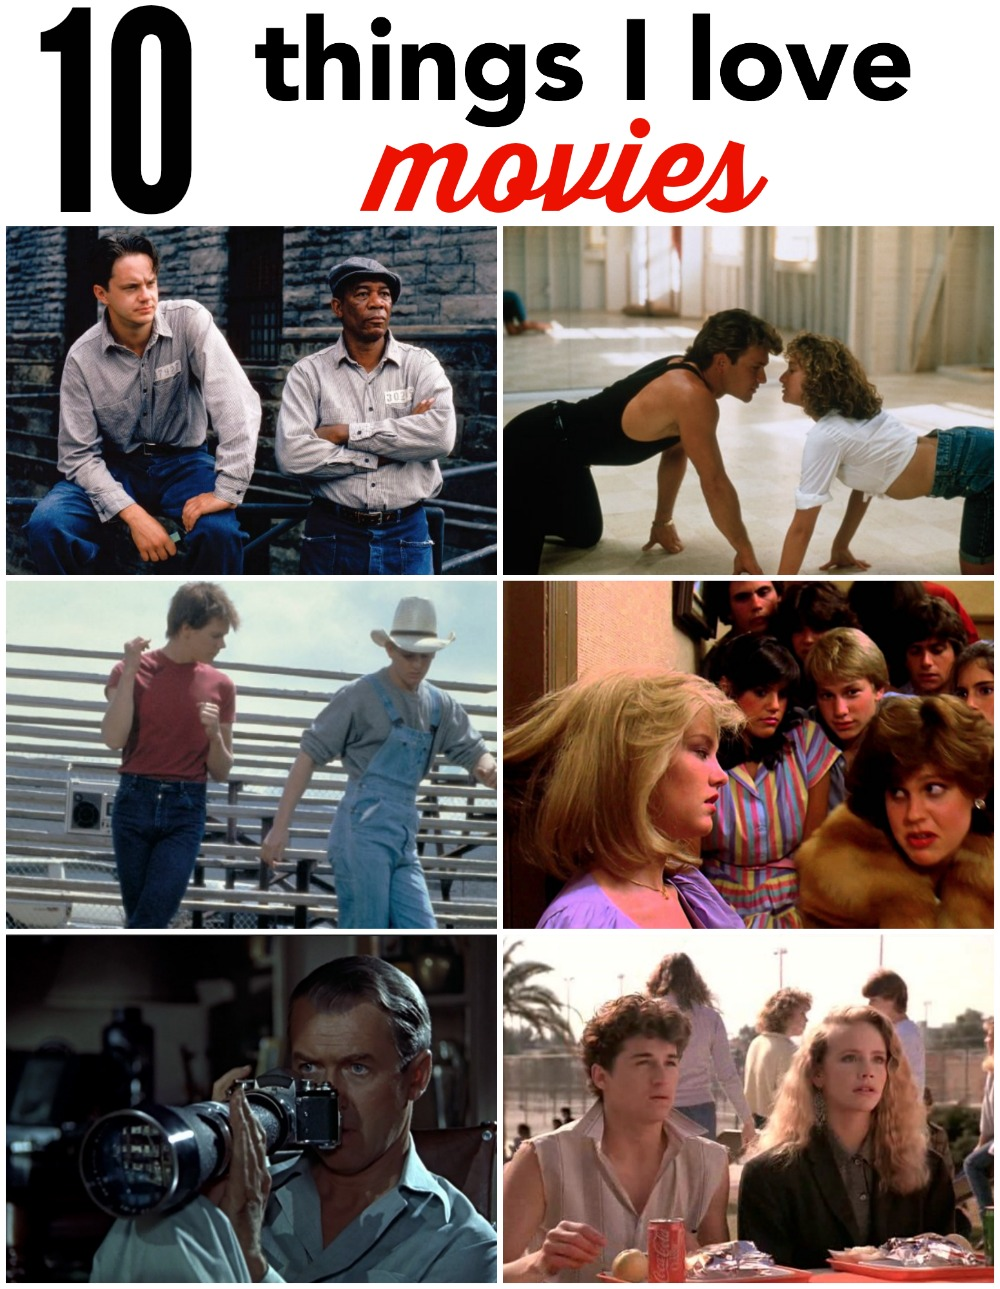 10 things I Love Movies